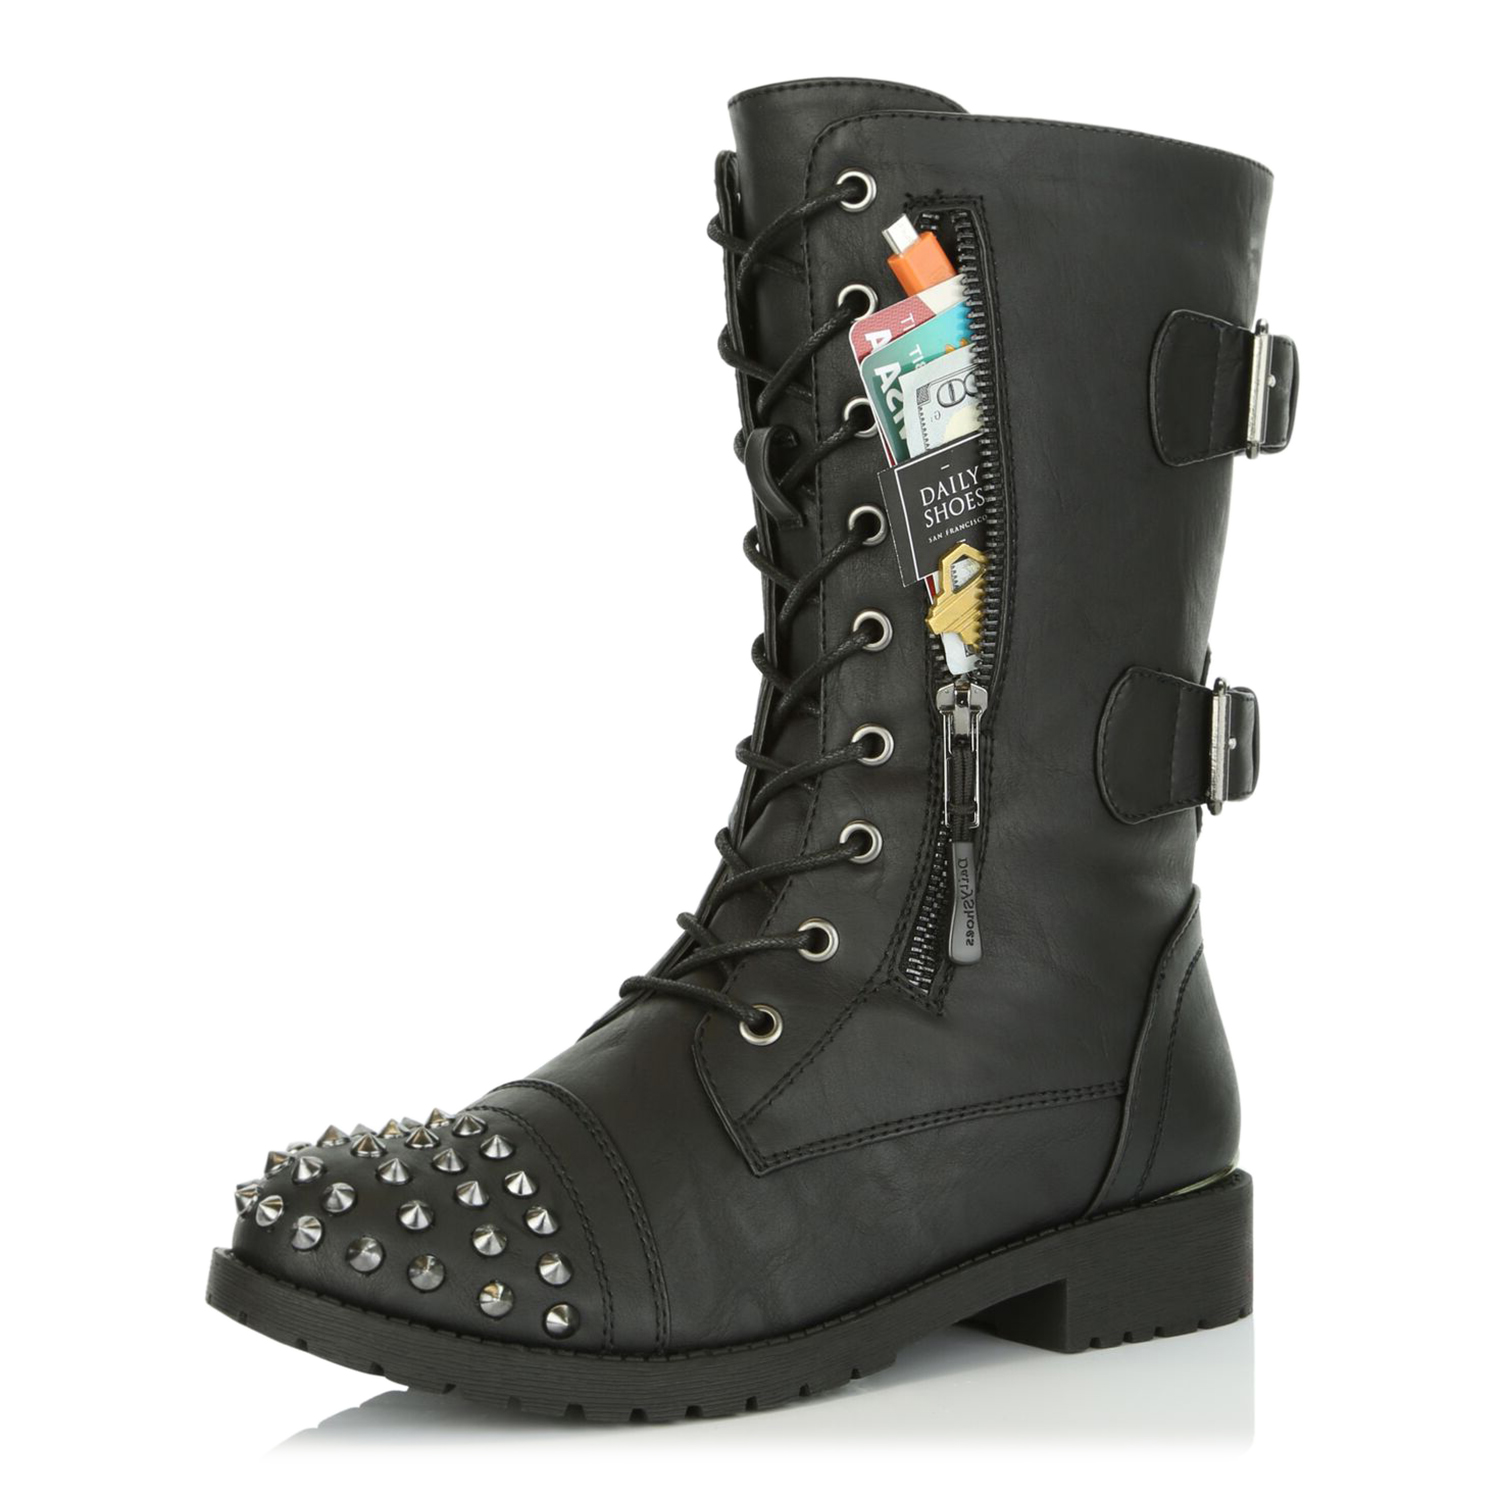 WOMENS LADIES SPIKE STUDS ANKLE BOOTS BIKER LACE UP ZIP PUNK WOMEN ANKLE SHOES